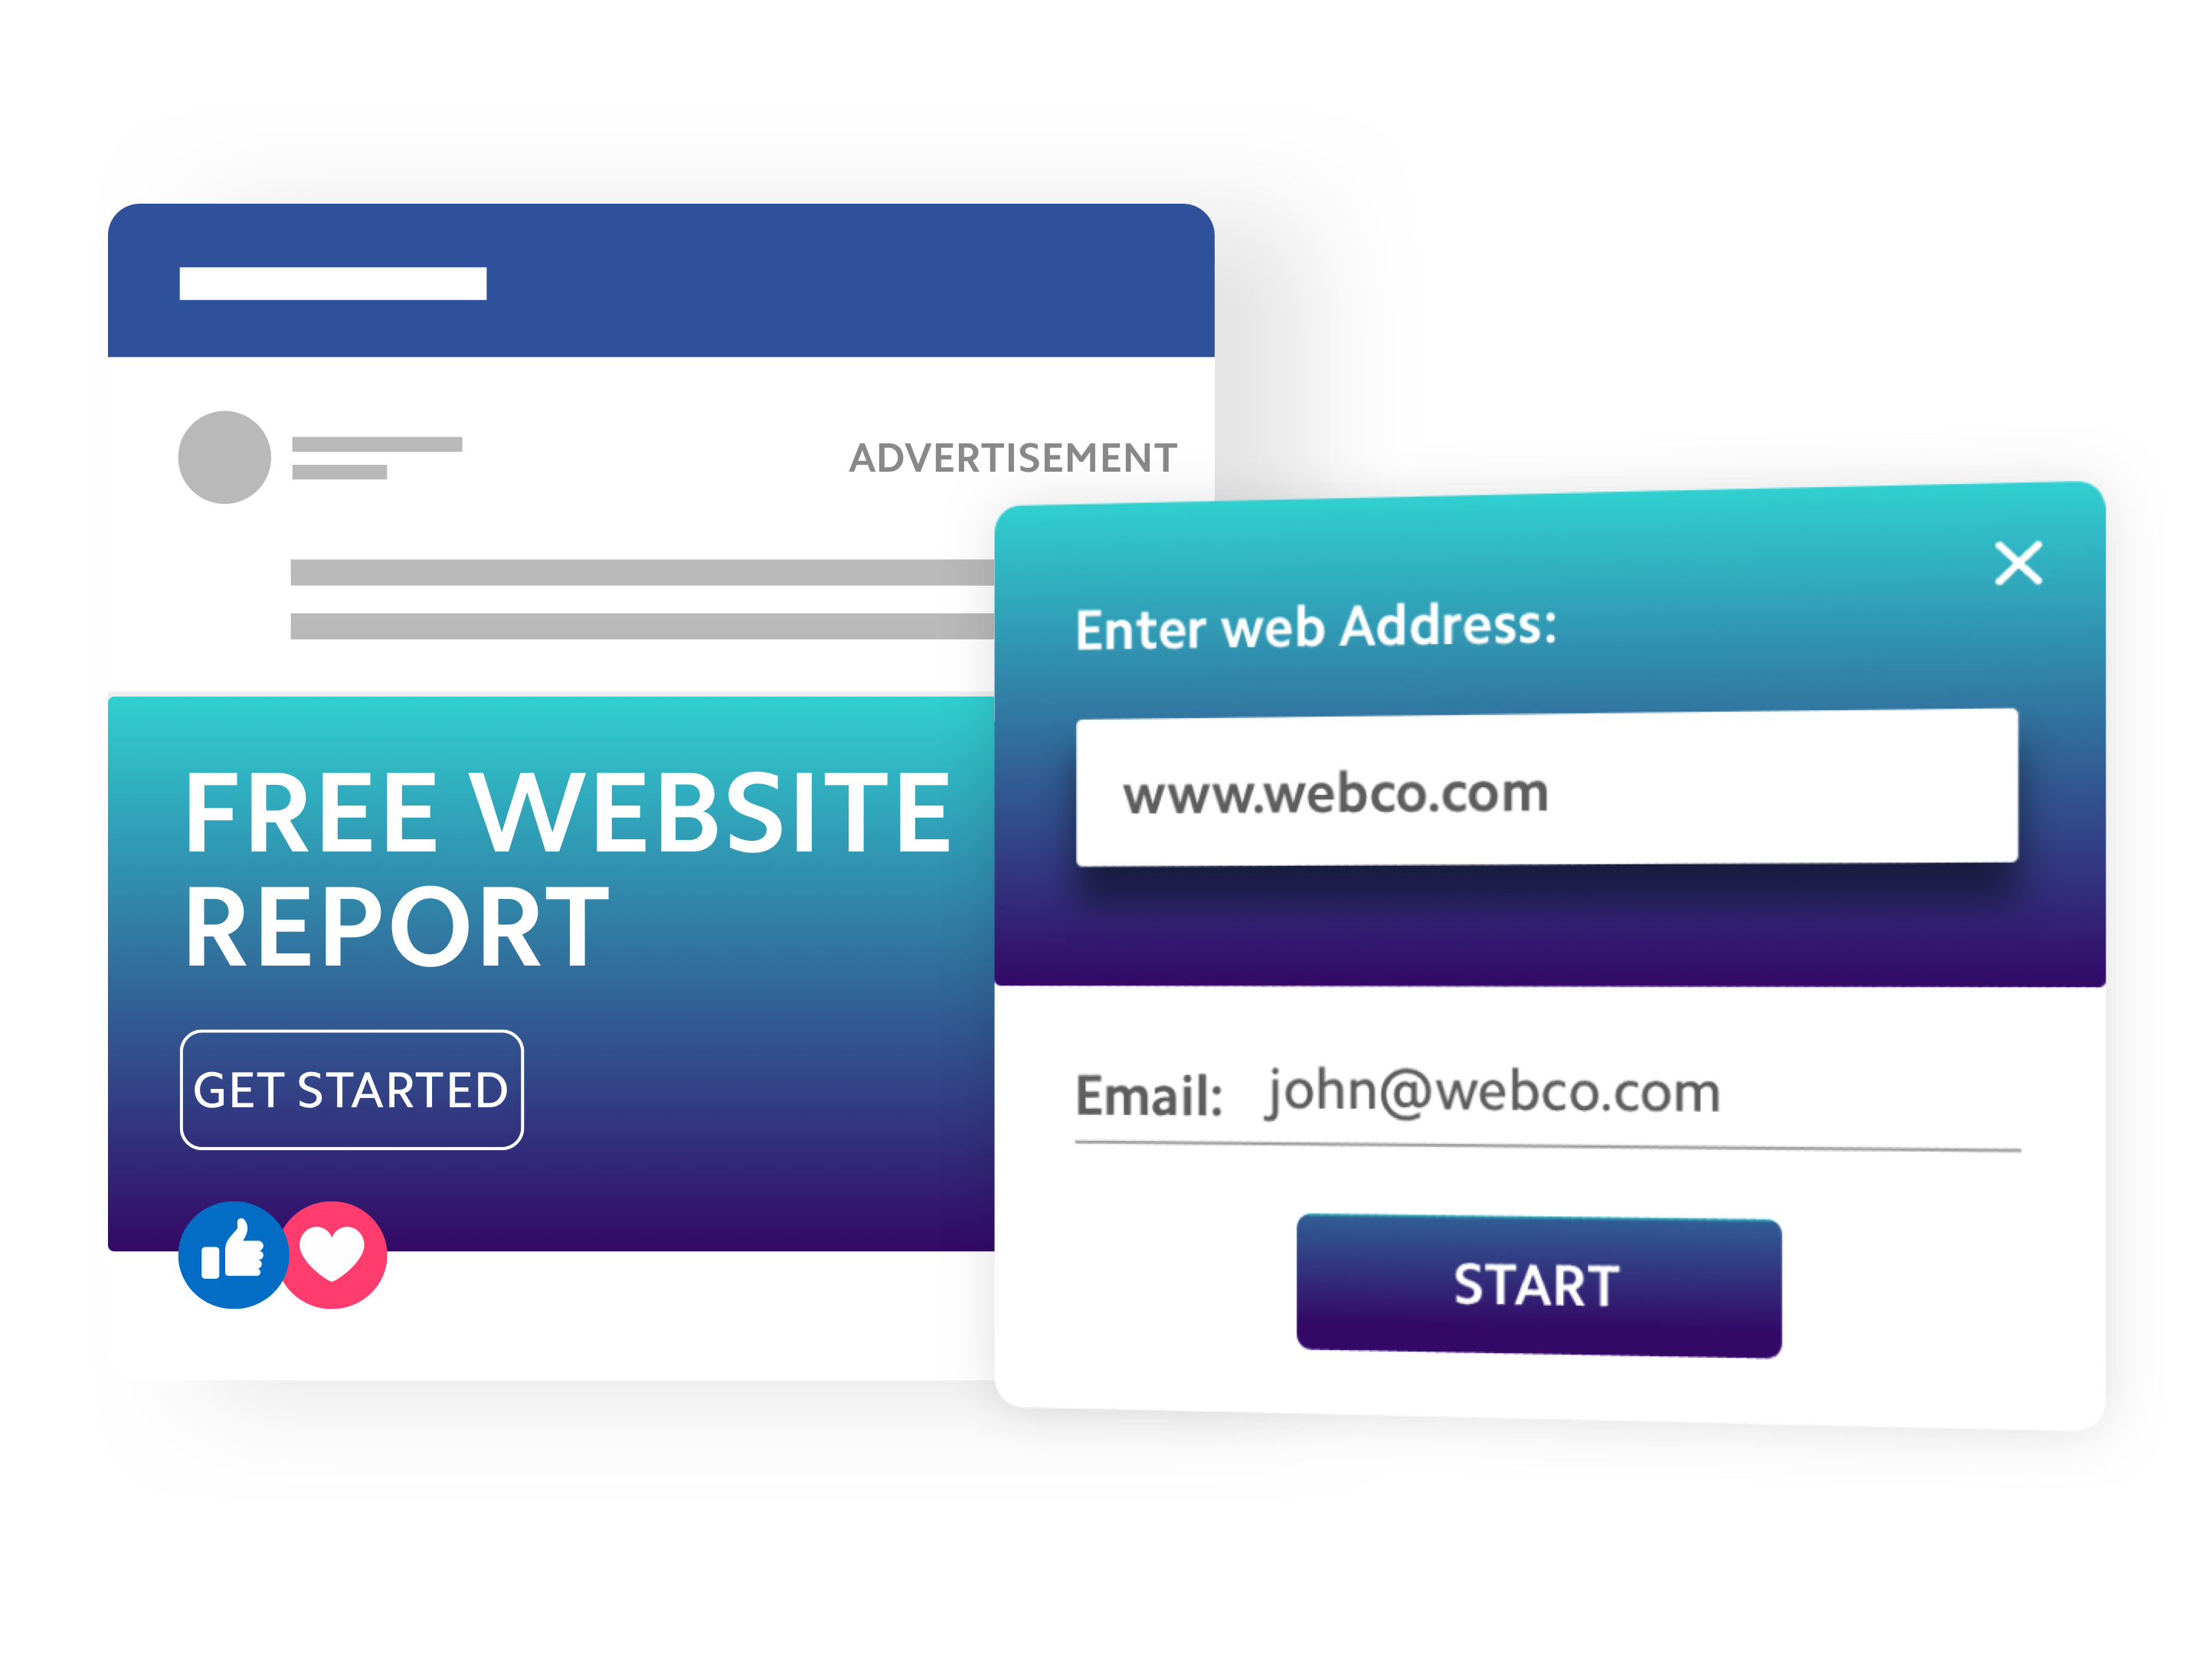 Free website report